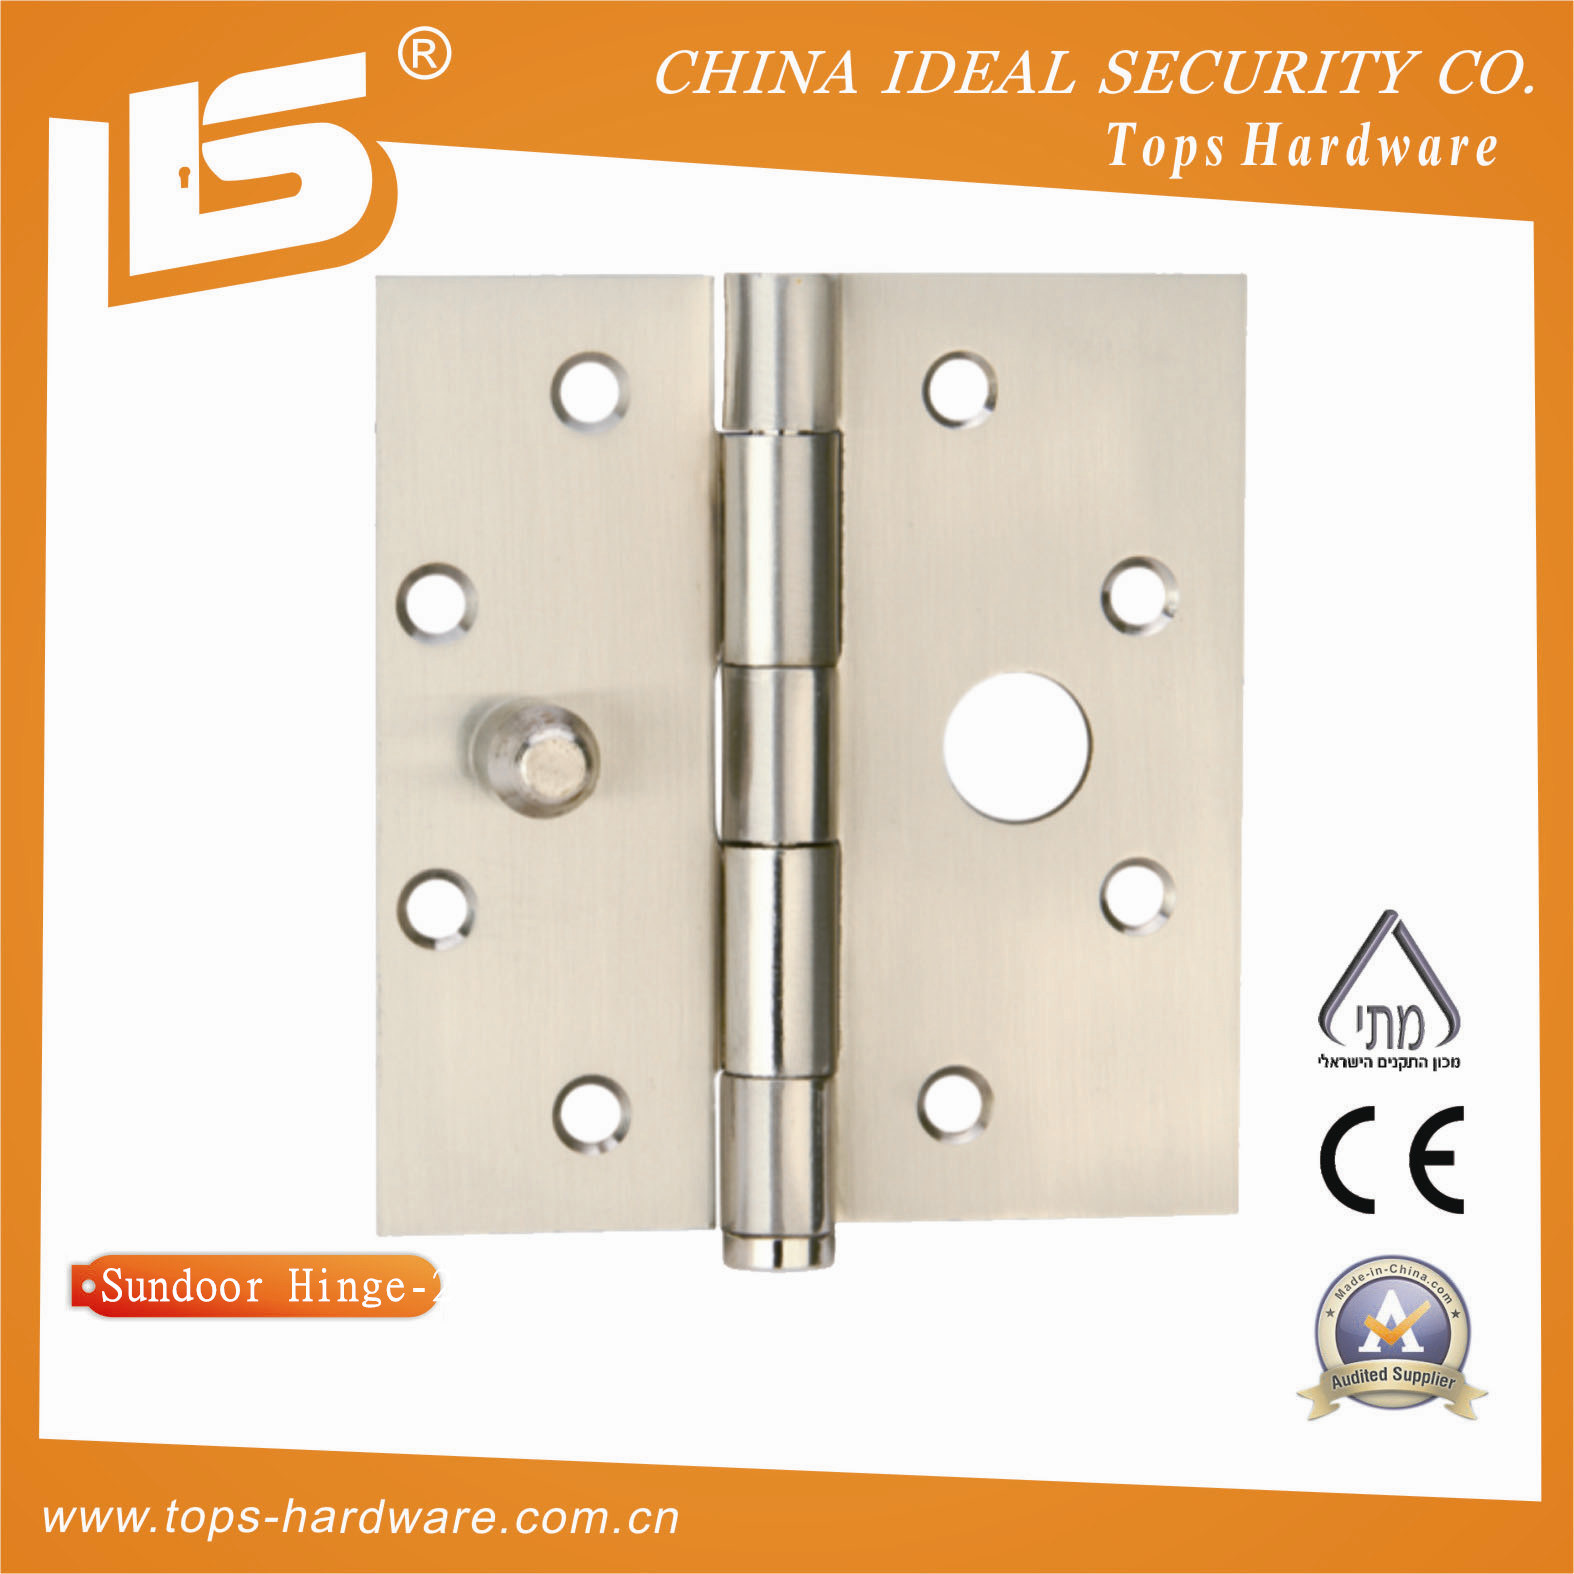 China Anti Theft Hinge with Security Stud Hinge - China ...